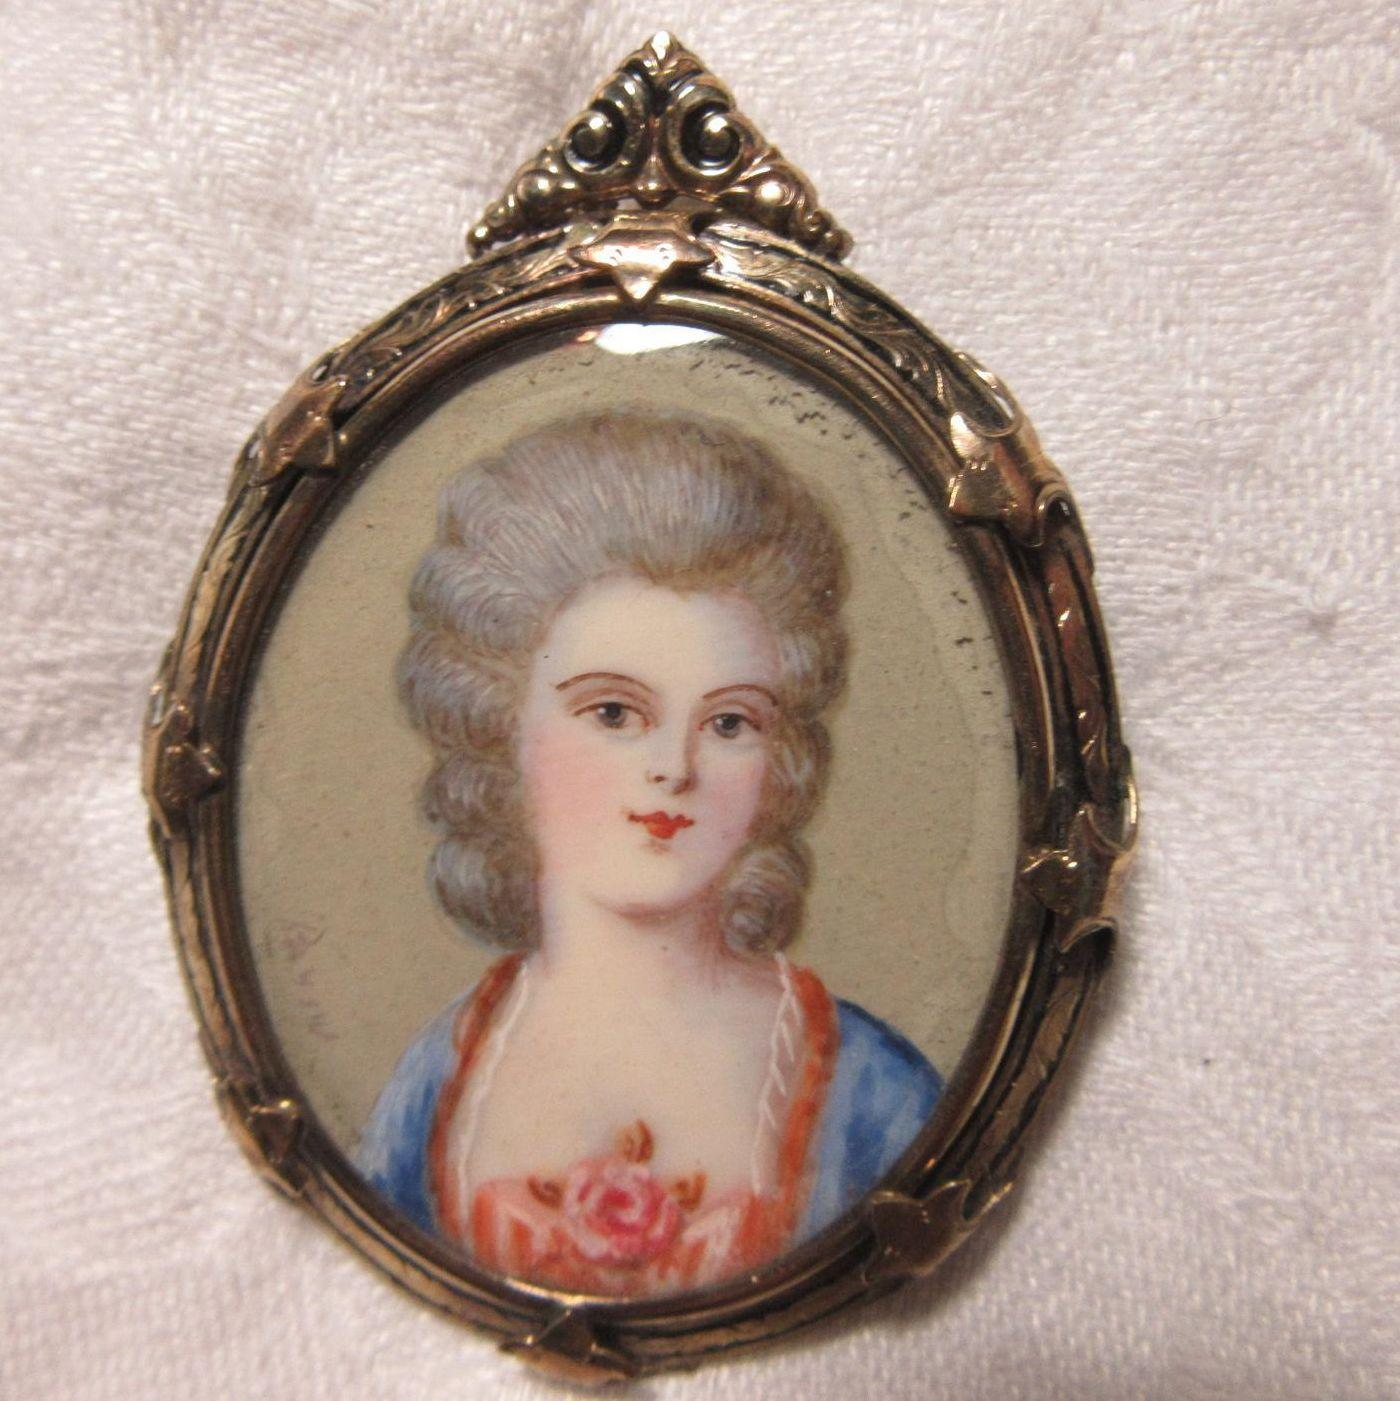 Miniature Portrait Brooch Elegant Lady Jewelry Art